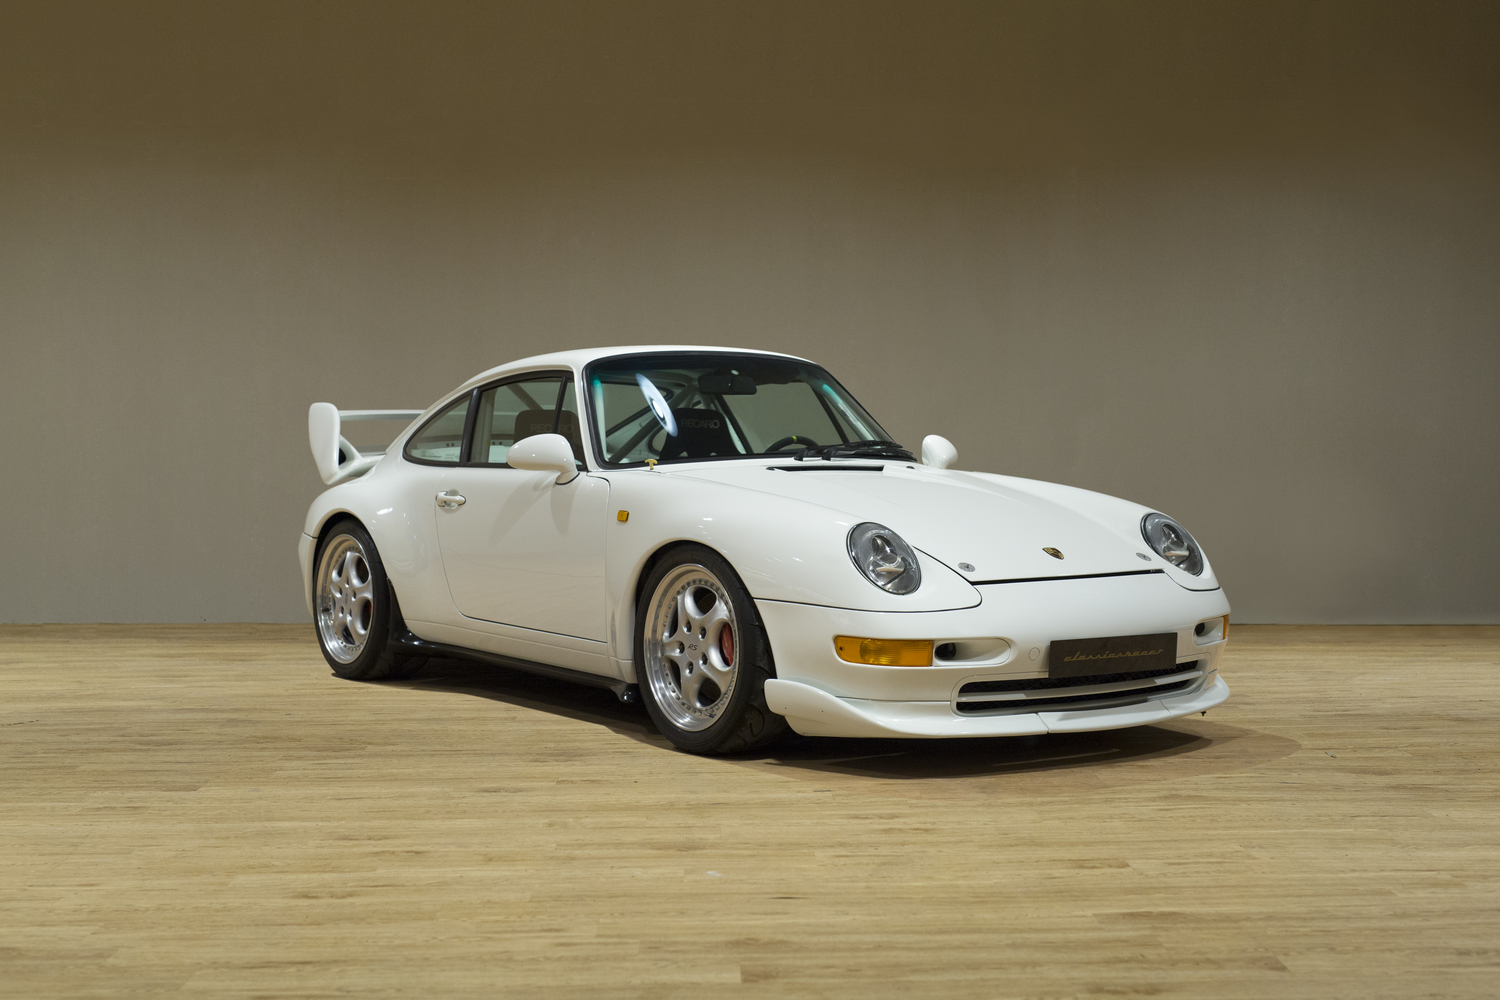 1995 Porsche 911 993 Carrera Rs Club Sport Classic